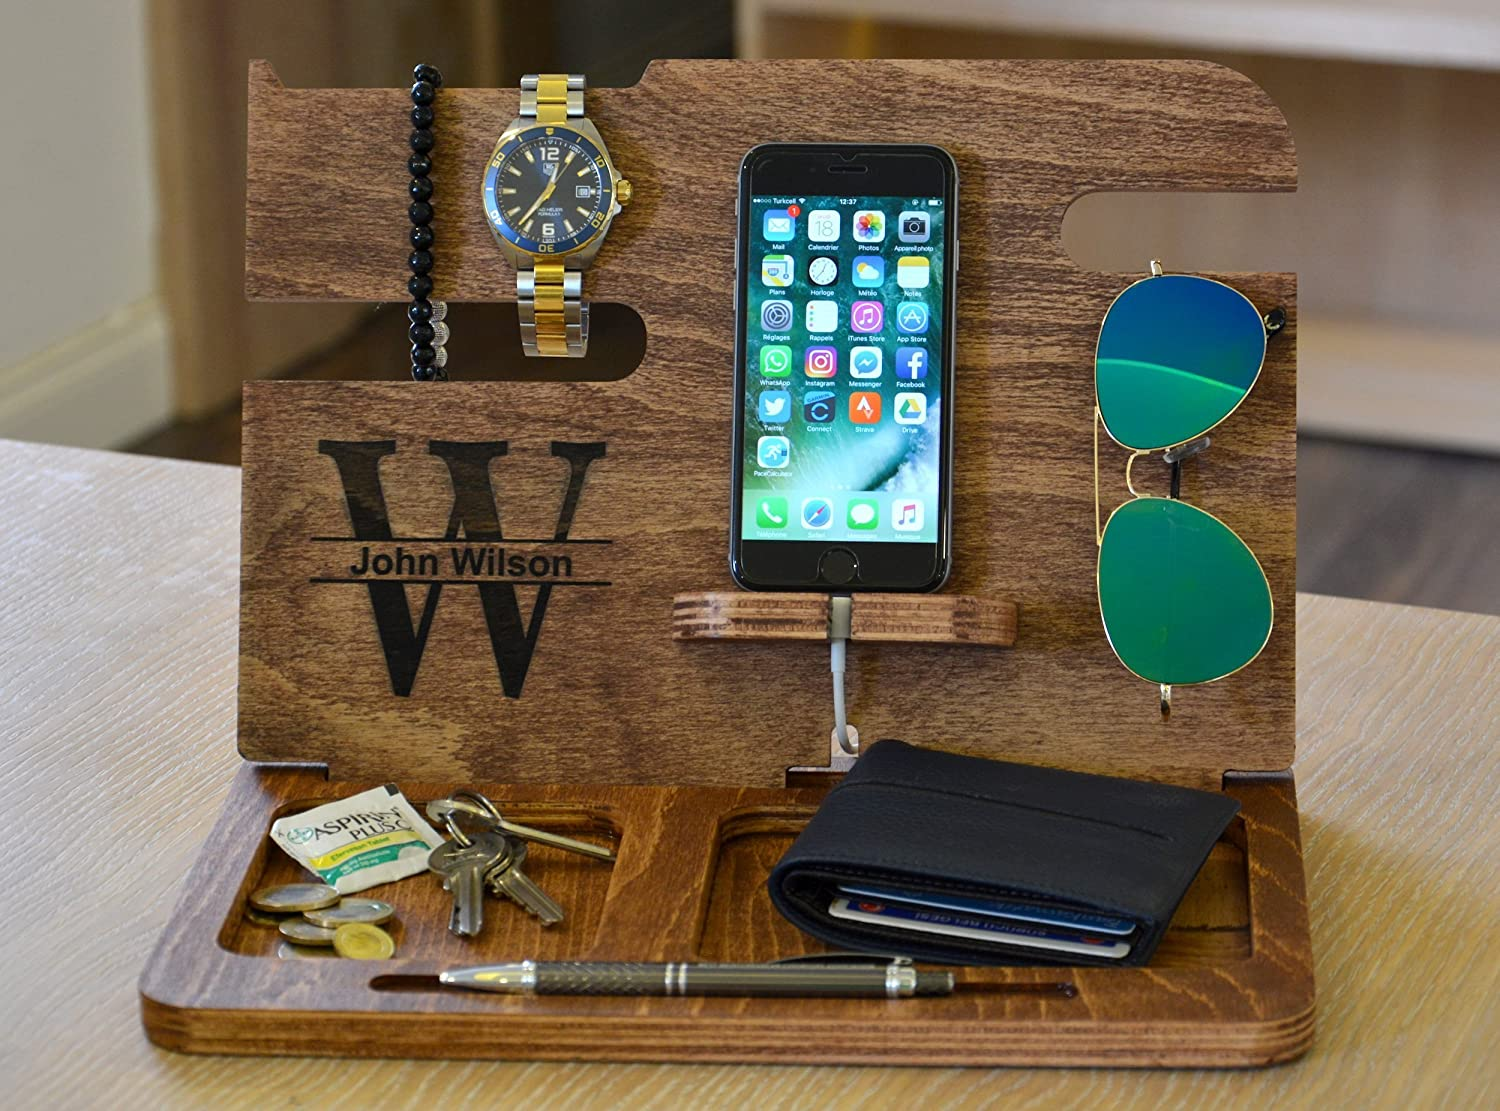 Phone Dock Fathers Day gifts Phone Docking Station Cell Phone Dock Mens gifts Mens Wood Organizer Gift ideas for men Boyfriend gift